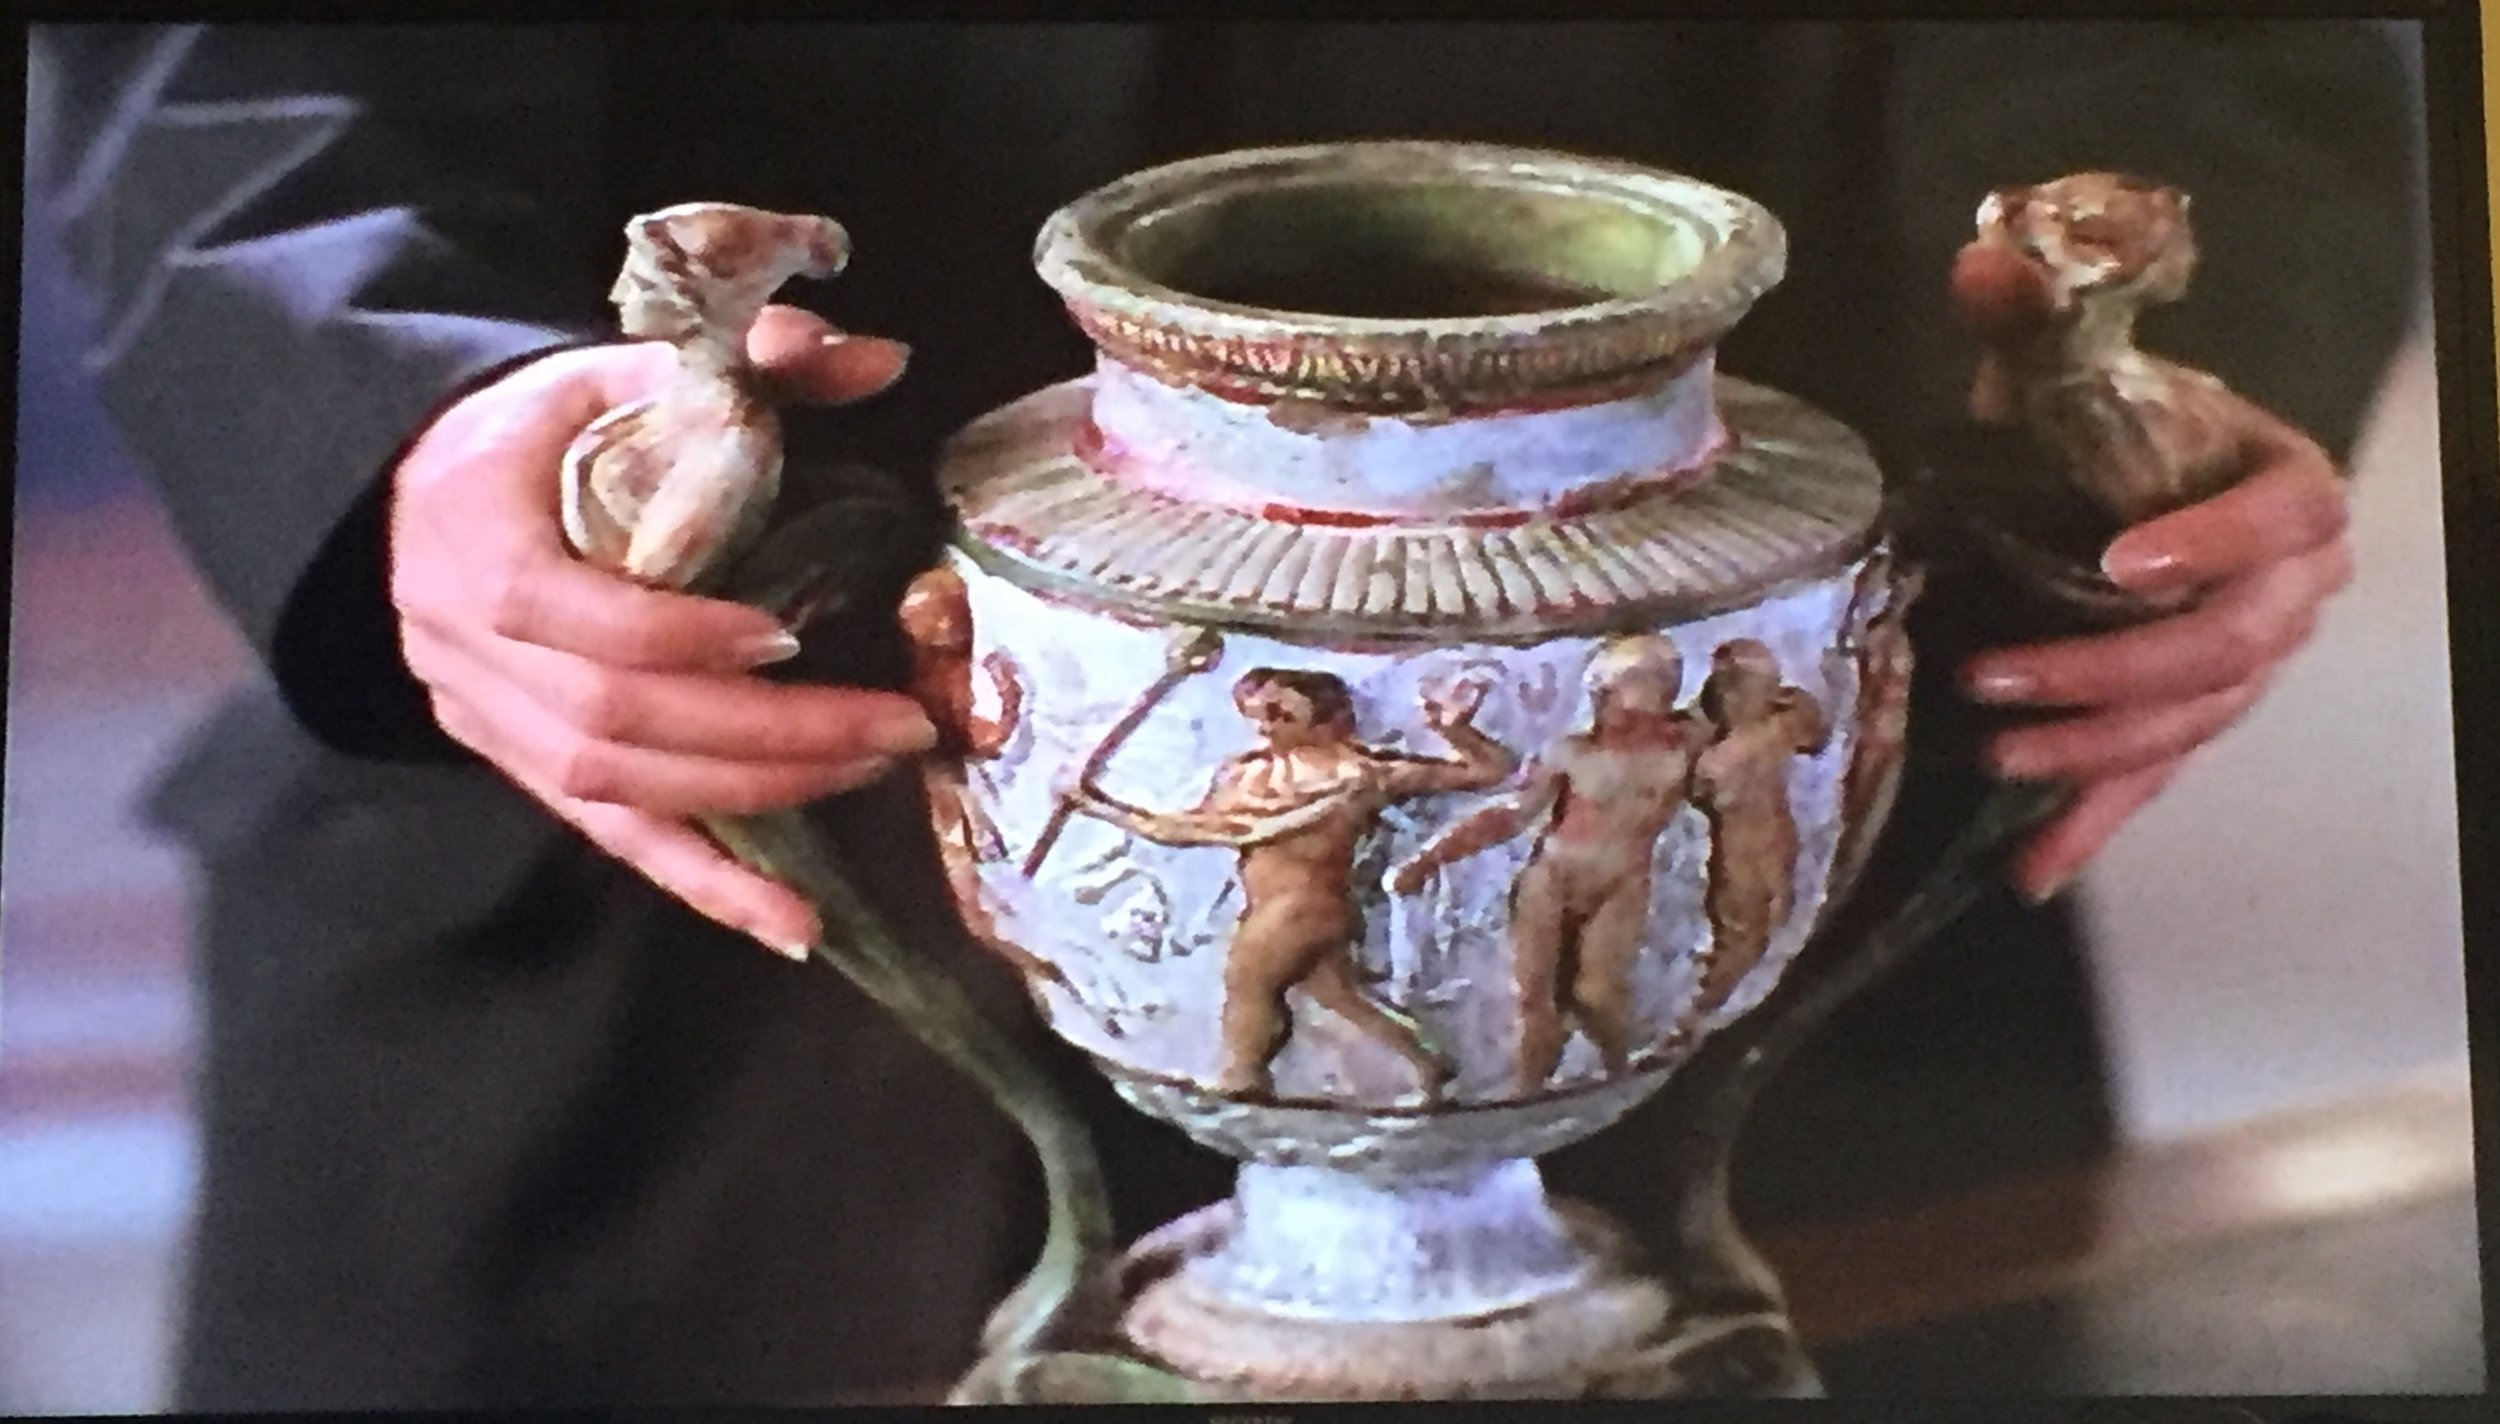 This is the vase Prue dated wrong...